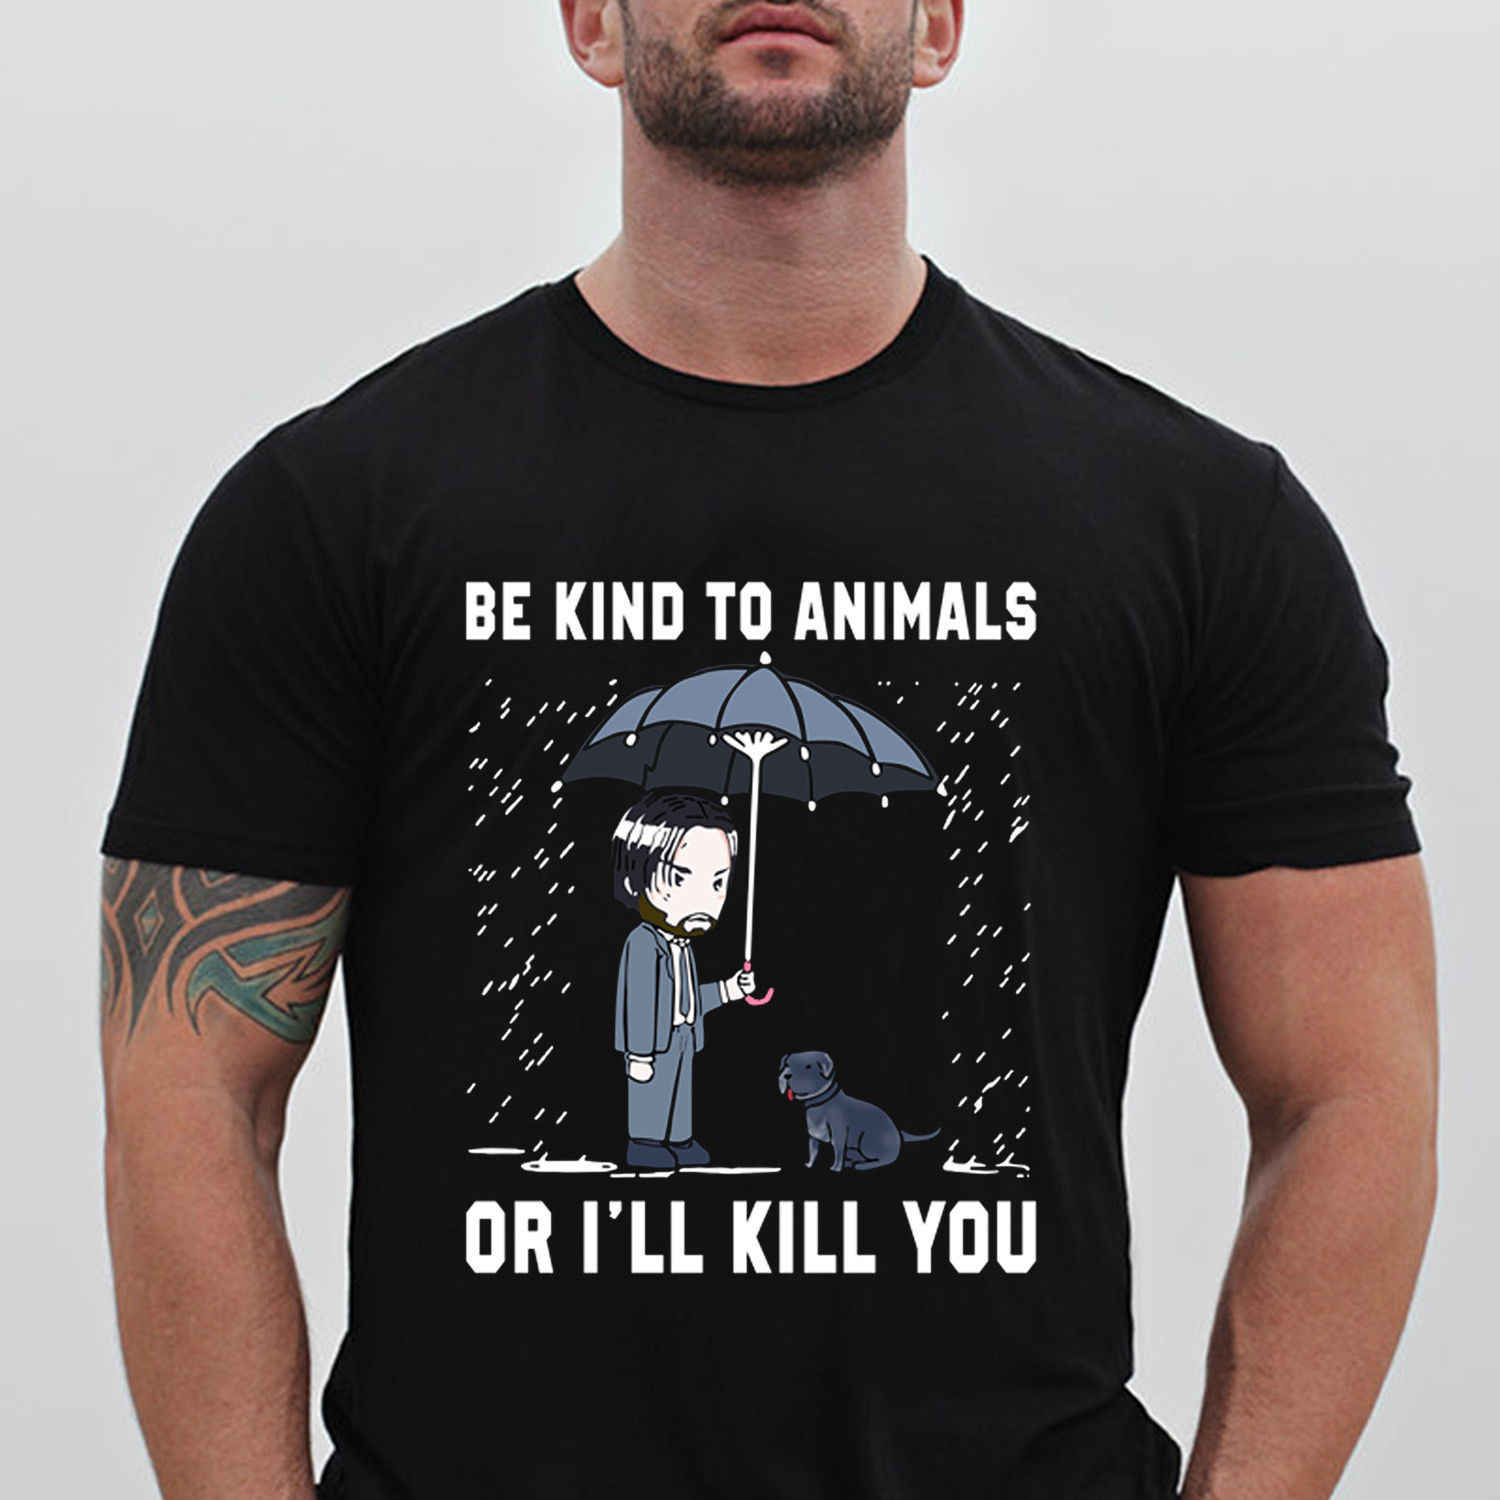 John Wick Be Kind To Animal Or I'll Kill You Adult Black   T  -  Shirt   Size Cartoon   t     shirt   men Unisex New Fashion tshirt